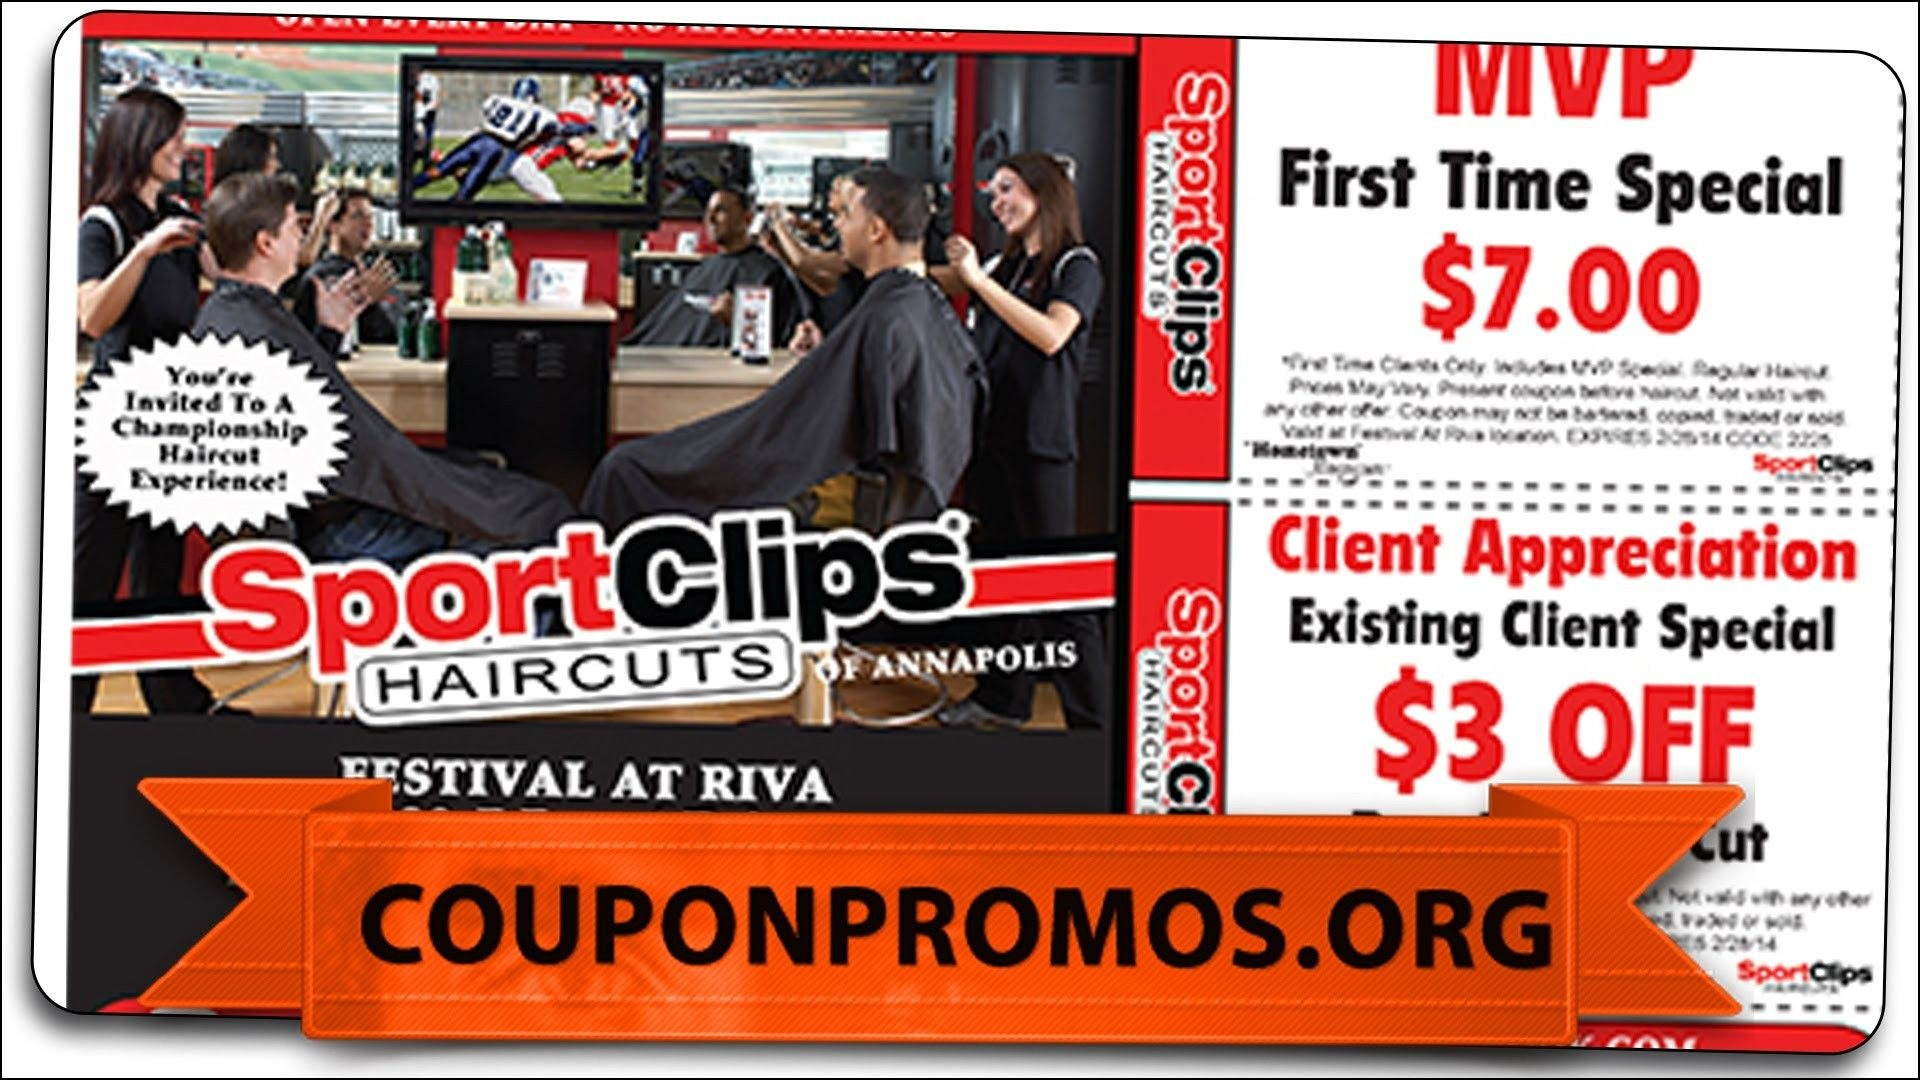 Haircut Sports Clips | Marketing | Sport Clips Haircuts, Haircut - Great Clips Free Coupons Printable